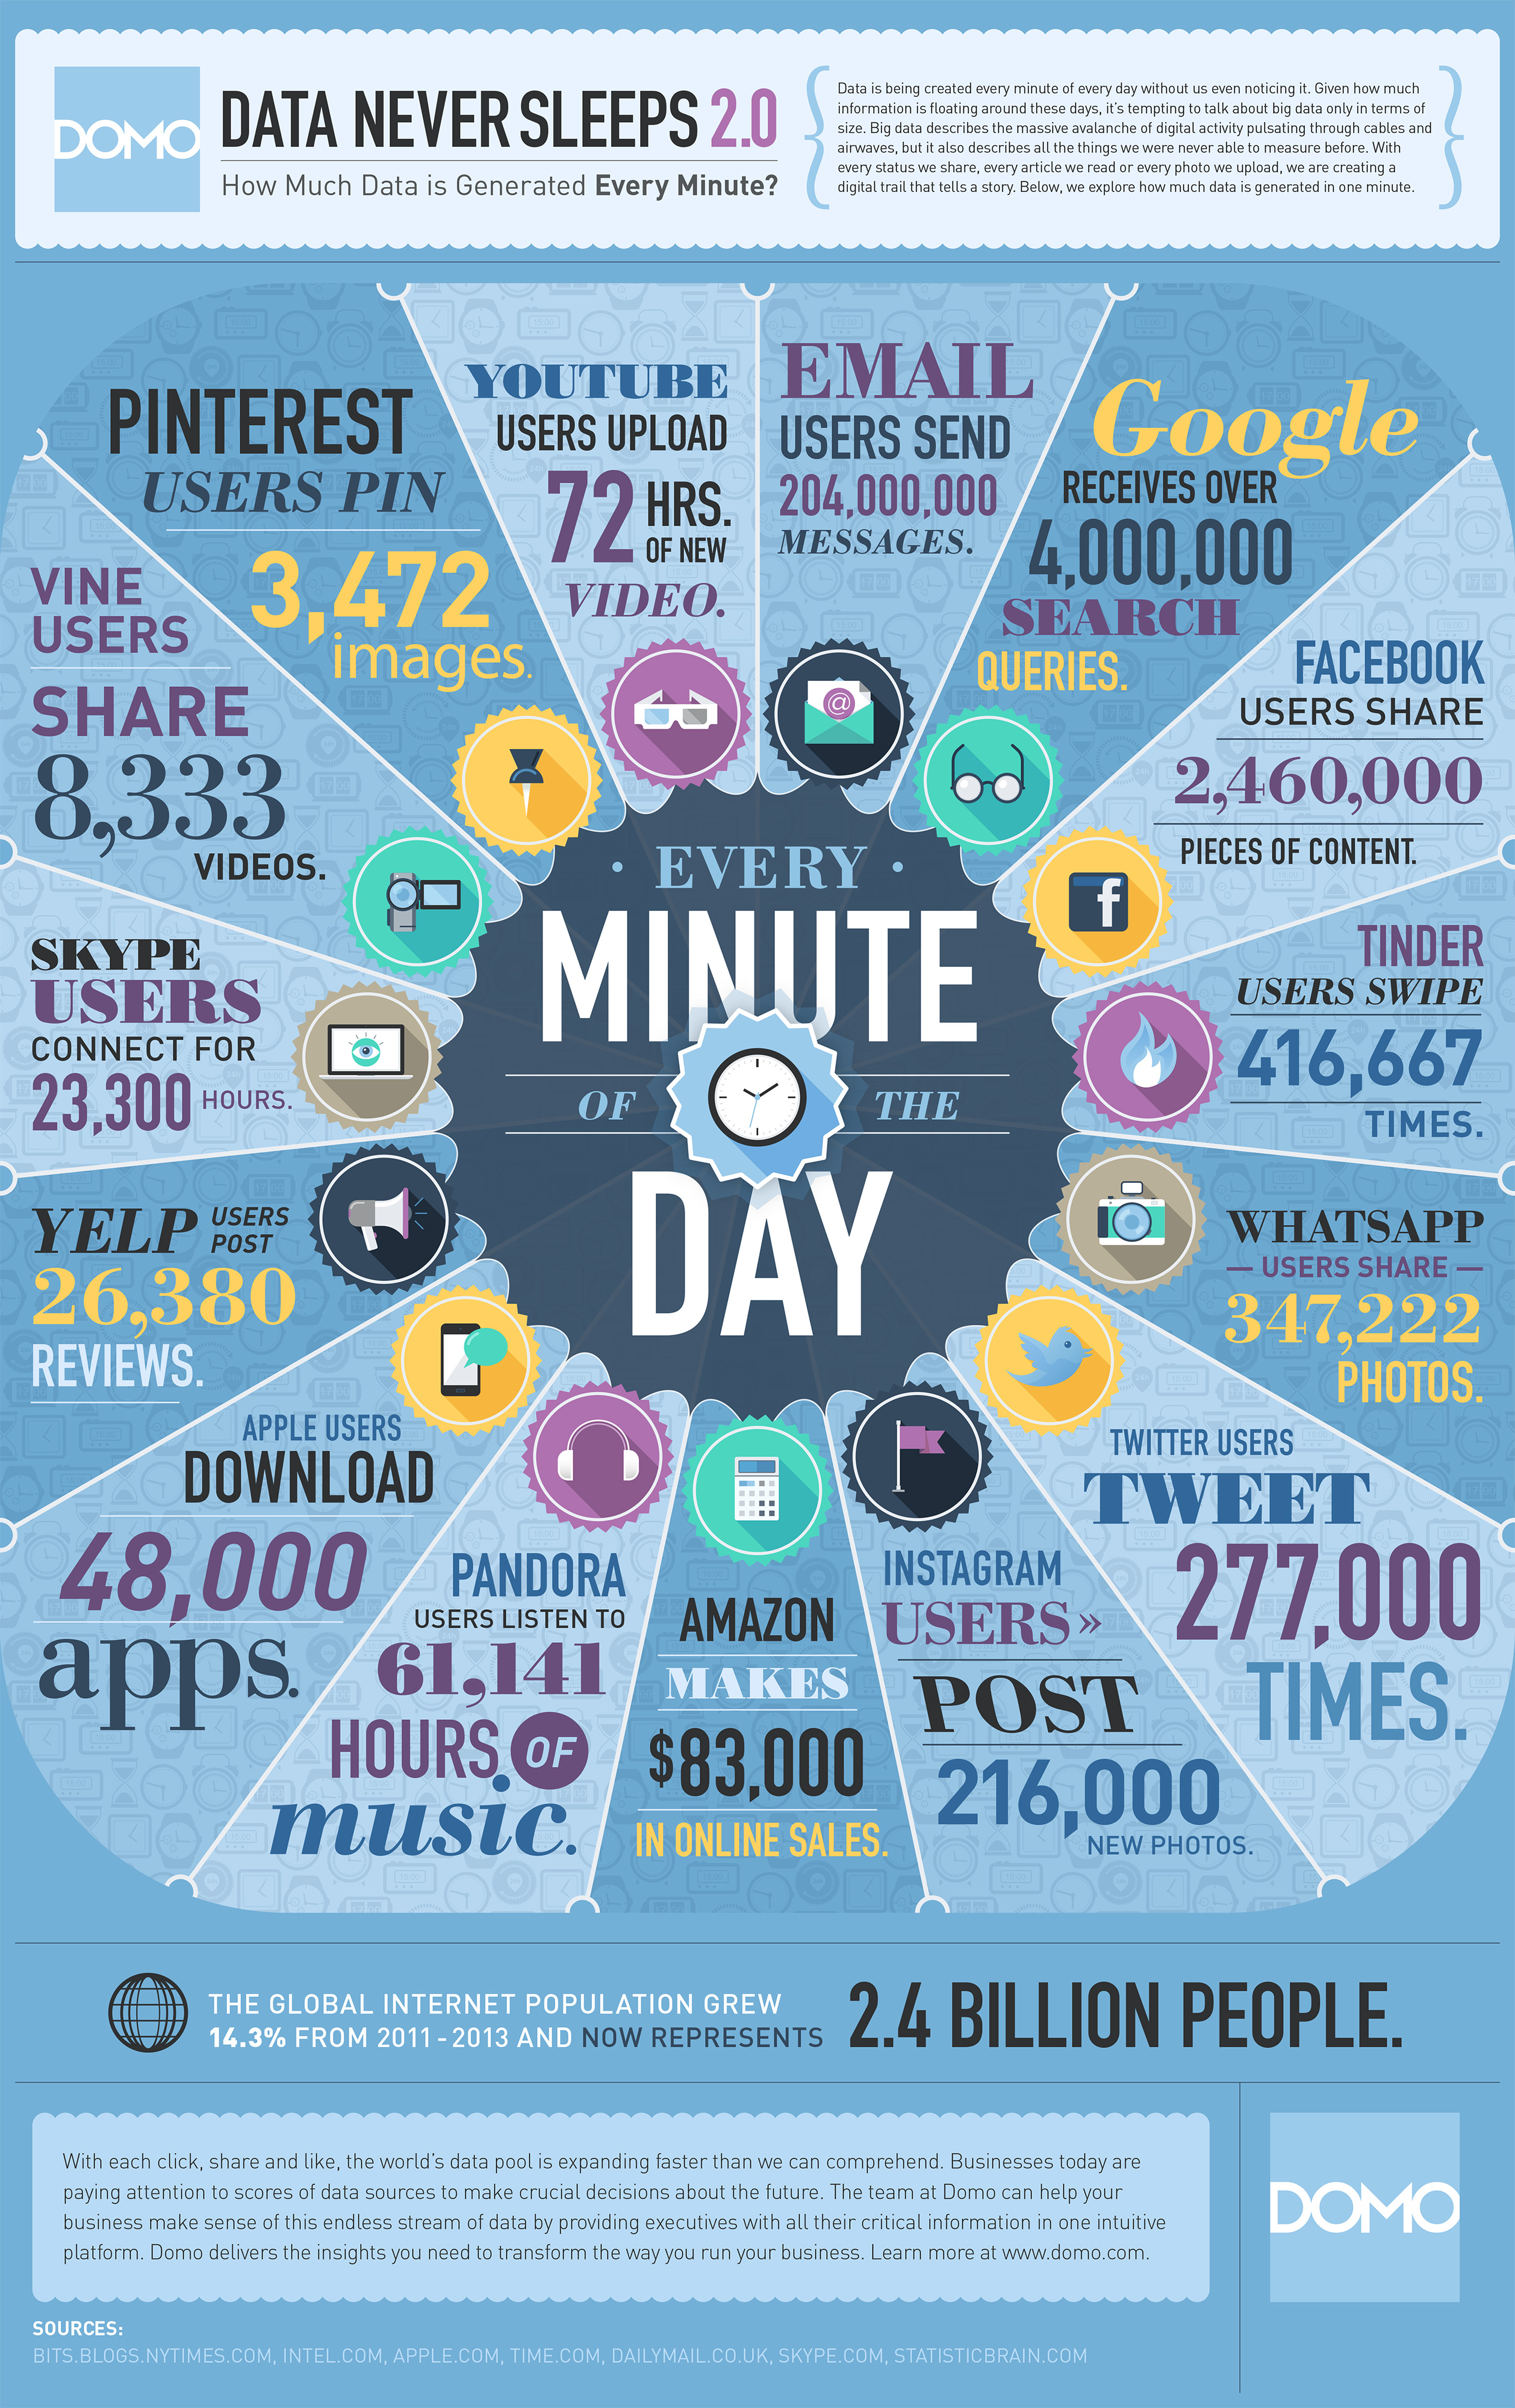 Infographic from Domo